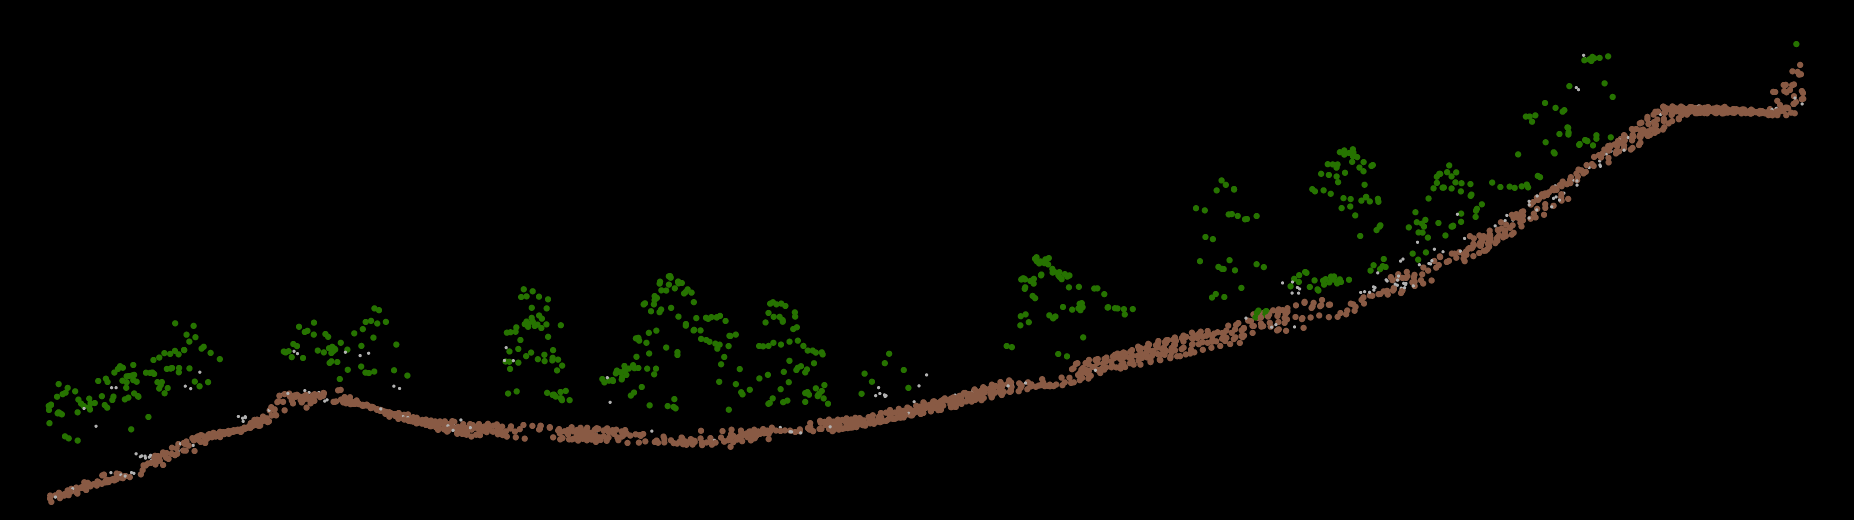 A cross section of 3-dimensional lidar data. Brown points represent ground, green represent vegetation (trees).